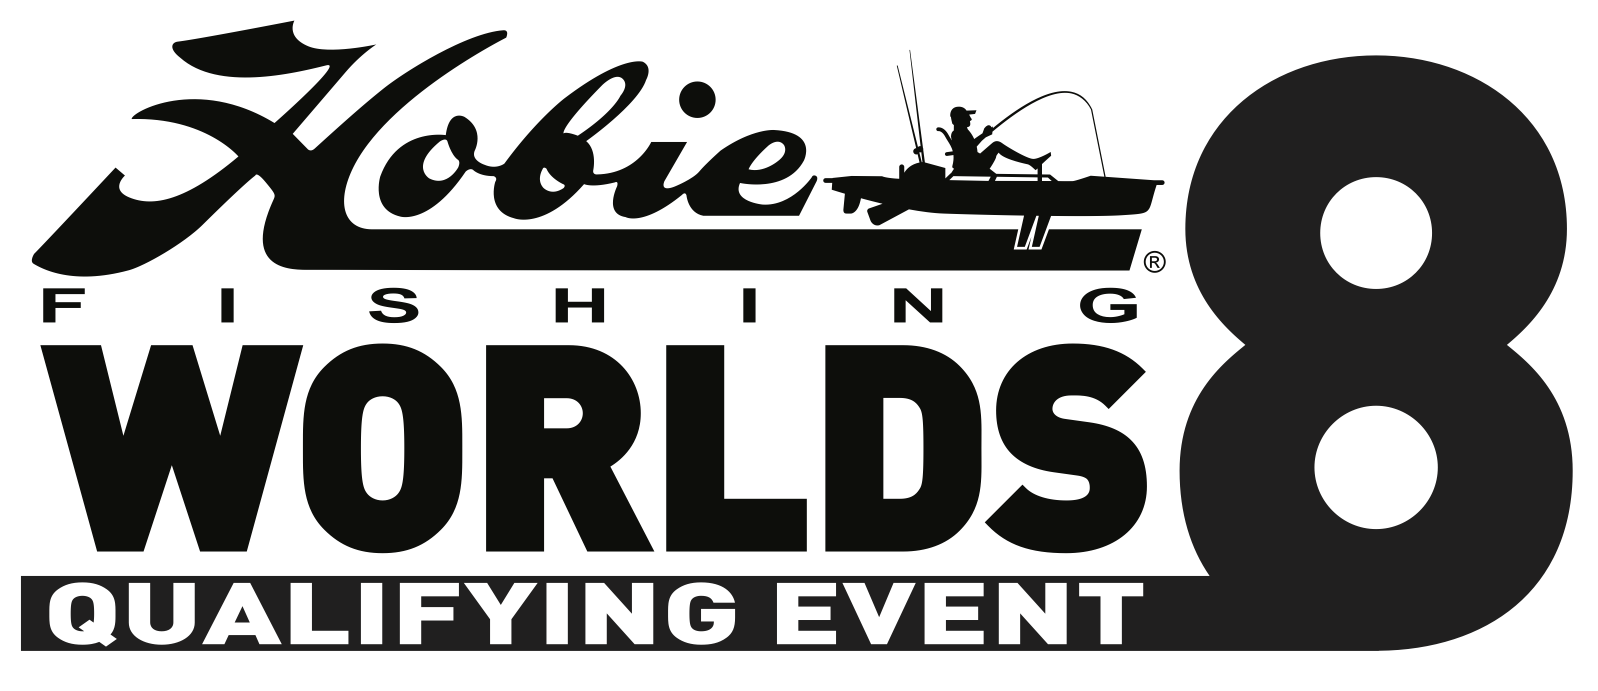 Hobie Worlds 8 Logo - Black